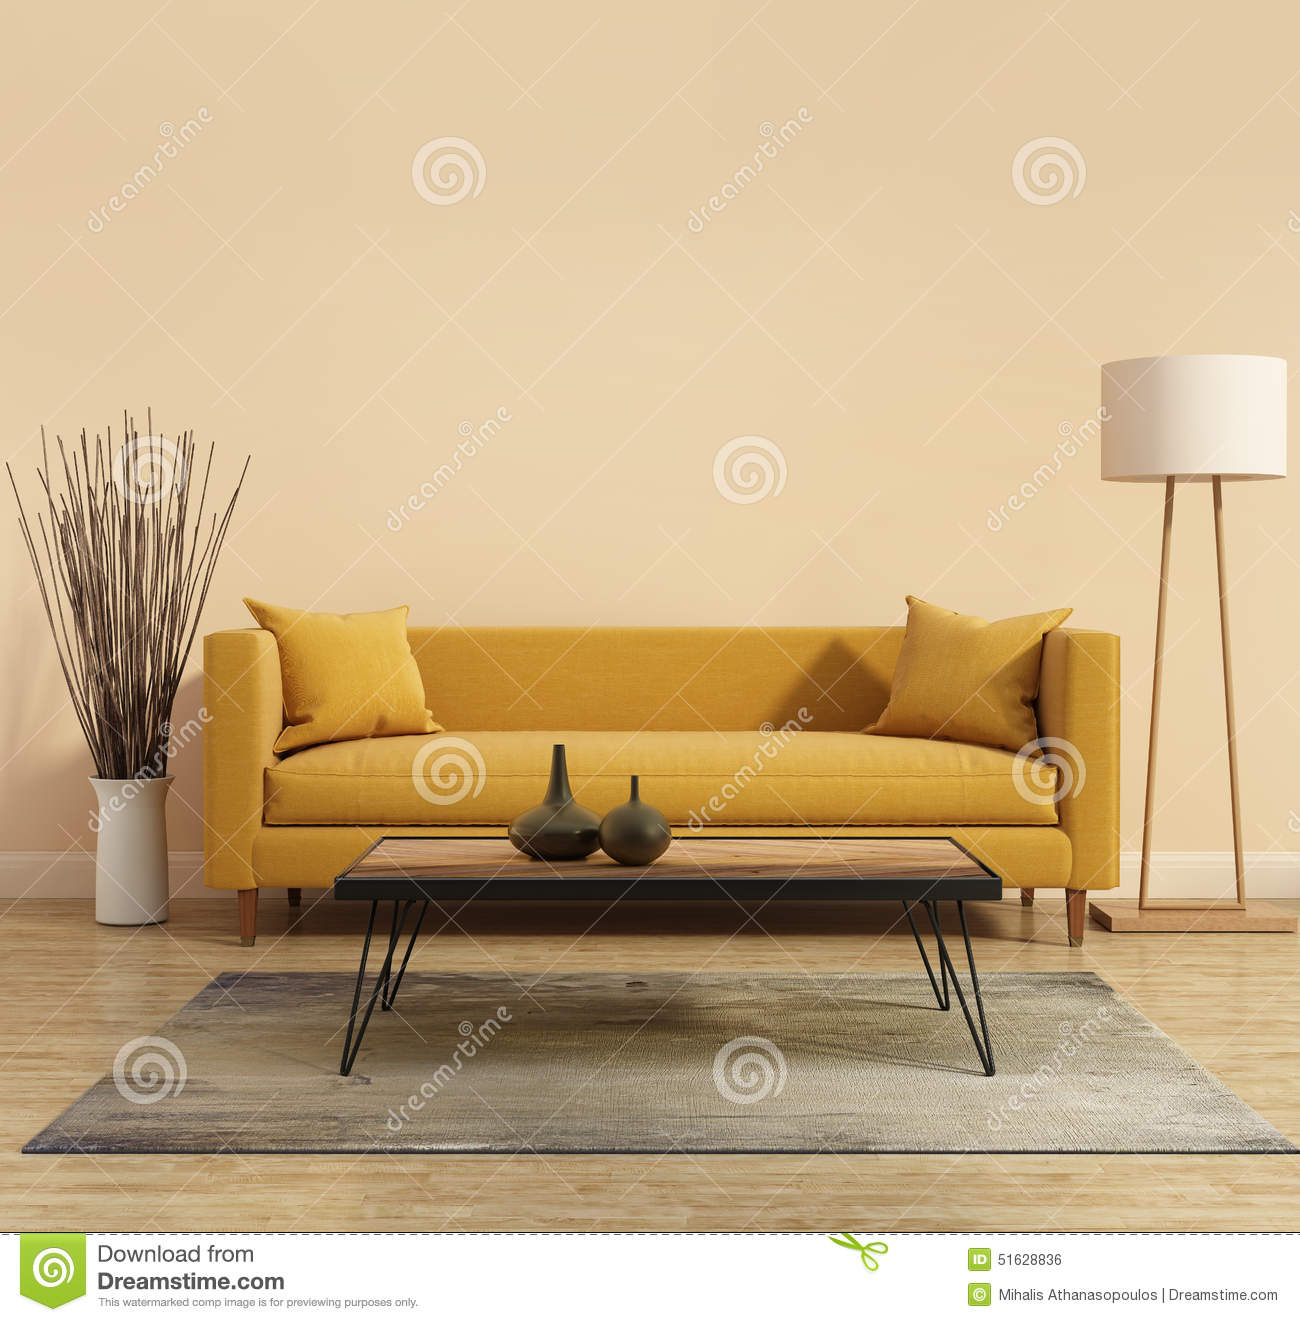 Modern modern interior with a yellow sofa in the living for Couch for drawing room